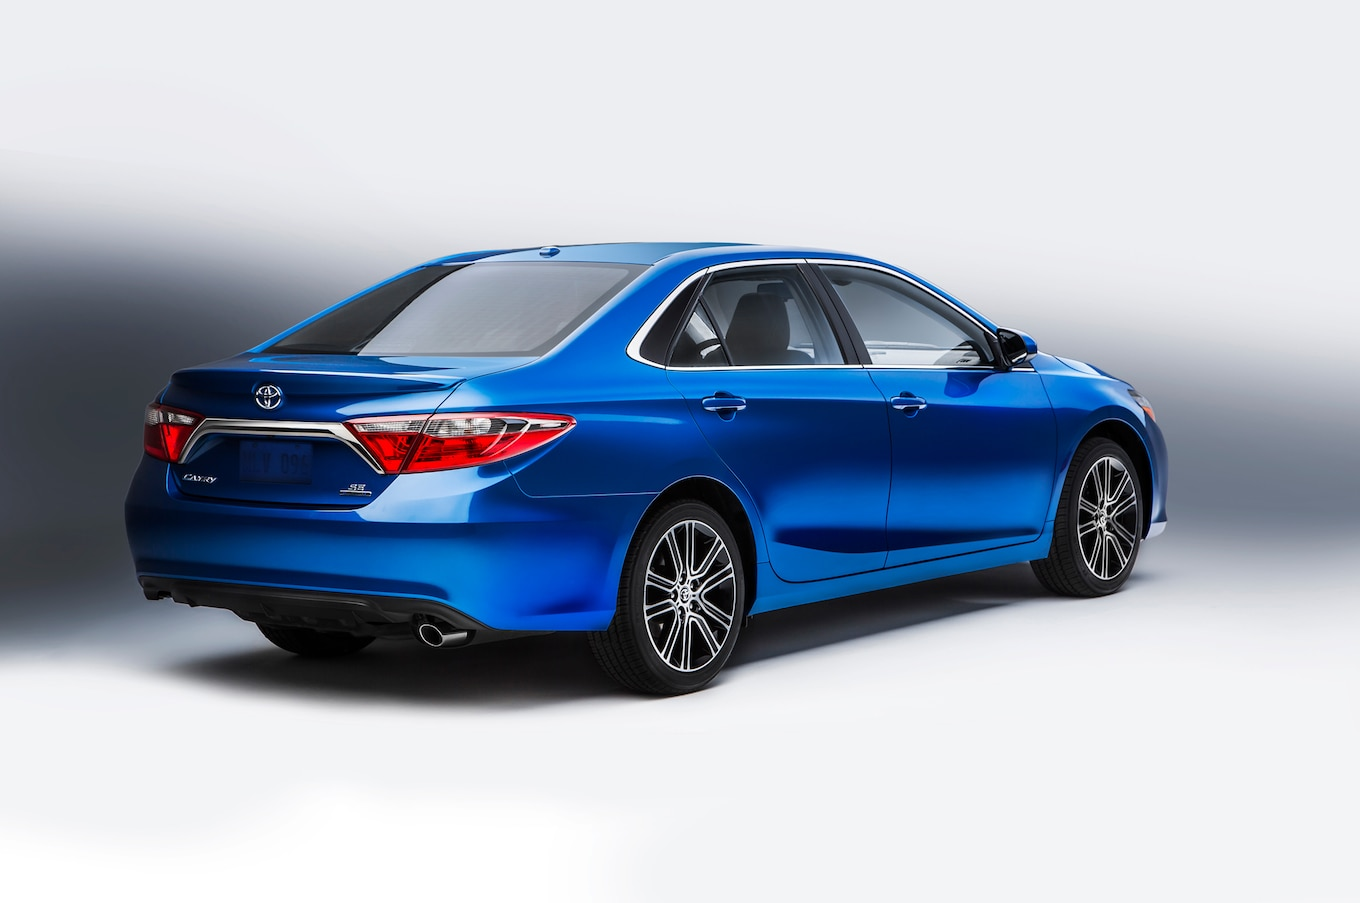 interior all new camry 2016 grand veloz 1.5 vs mobilio rs toyota corolla special edition to bow at chicago